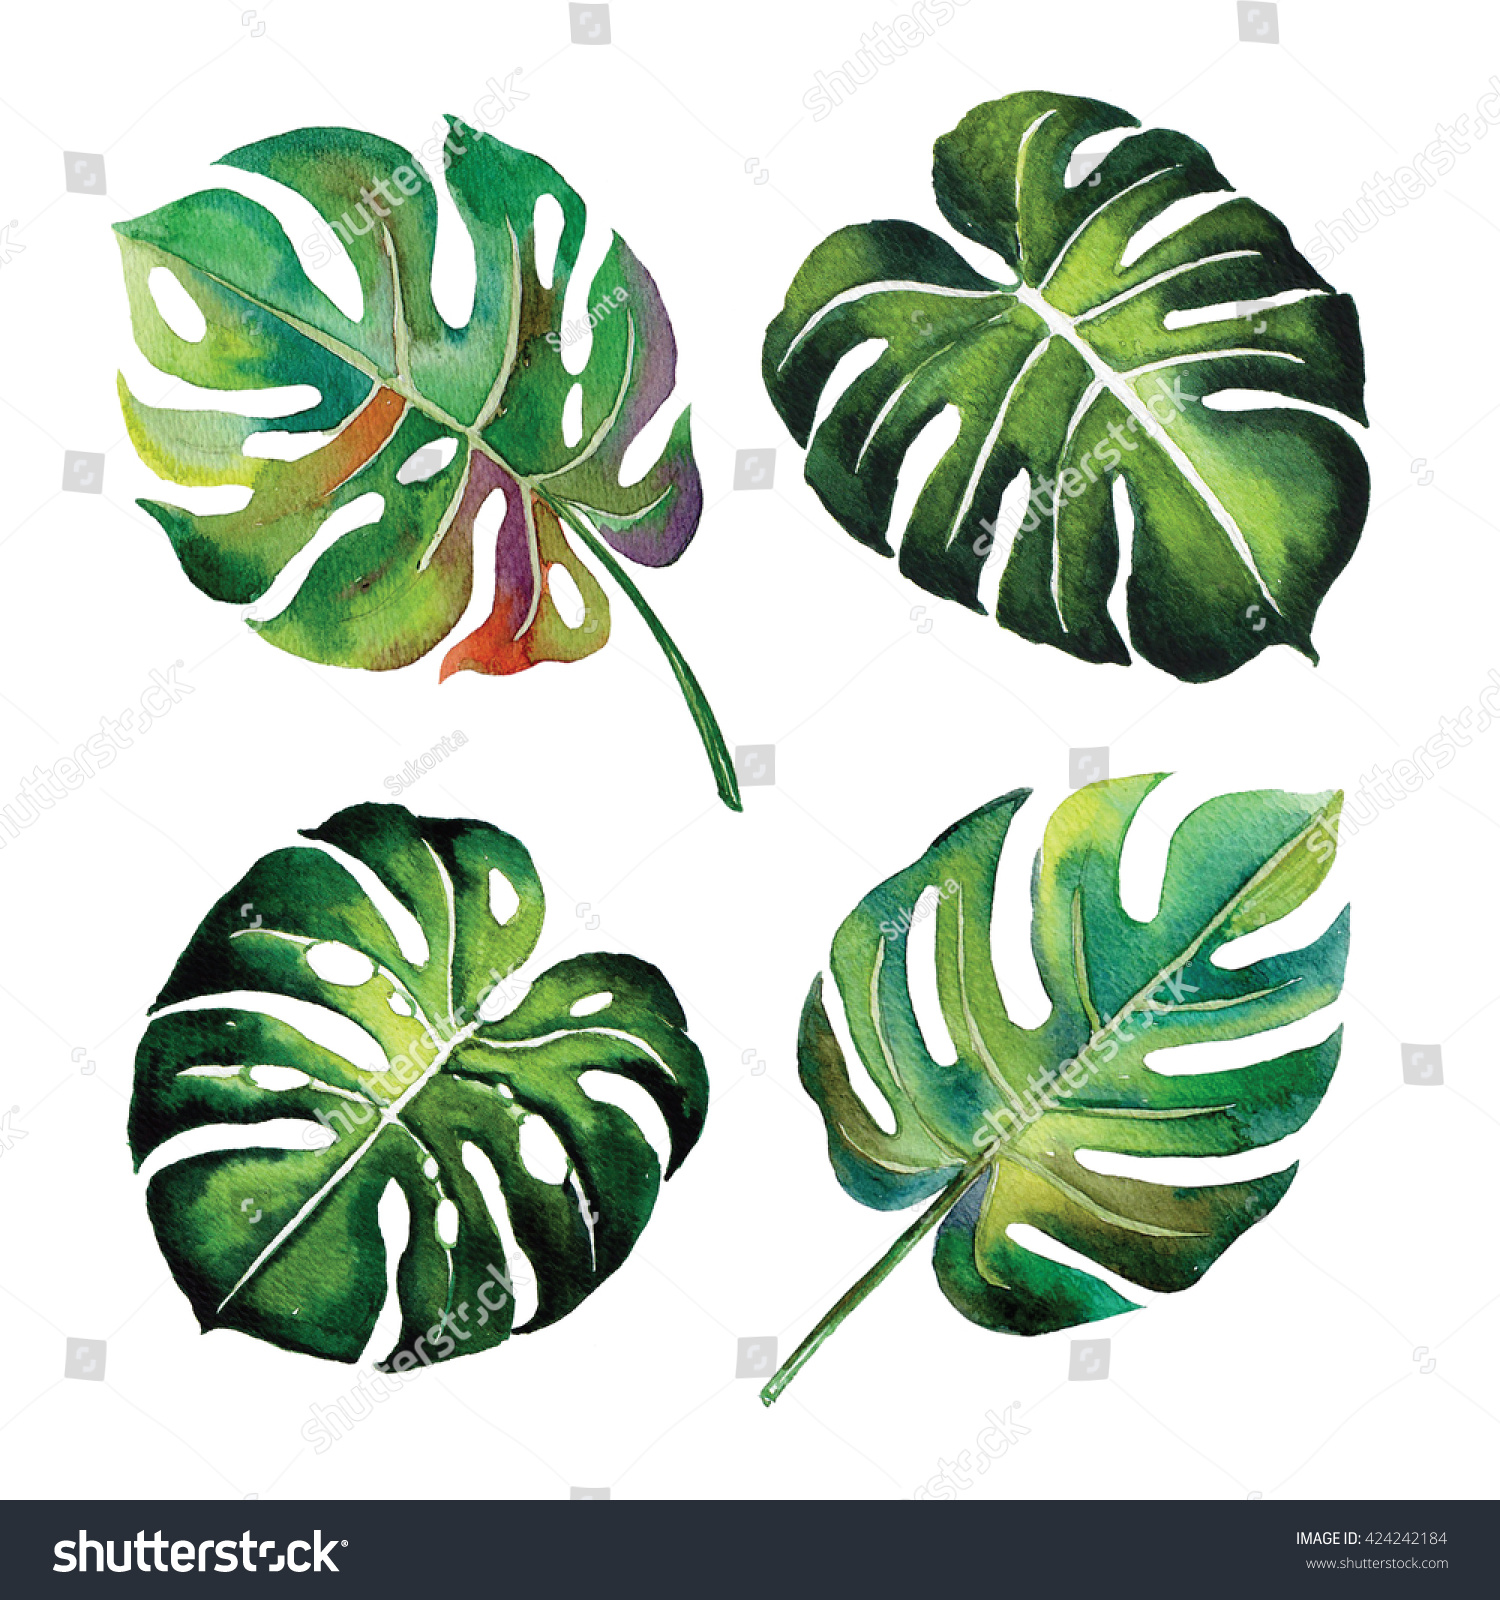 tropical split leaves plant botany watercolour stock illustration 424242184 shutterstock. Black Bedroom Furniture Sets. Home Design Ideas